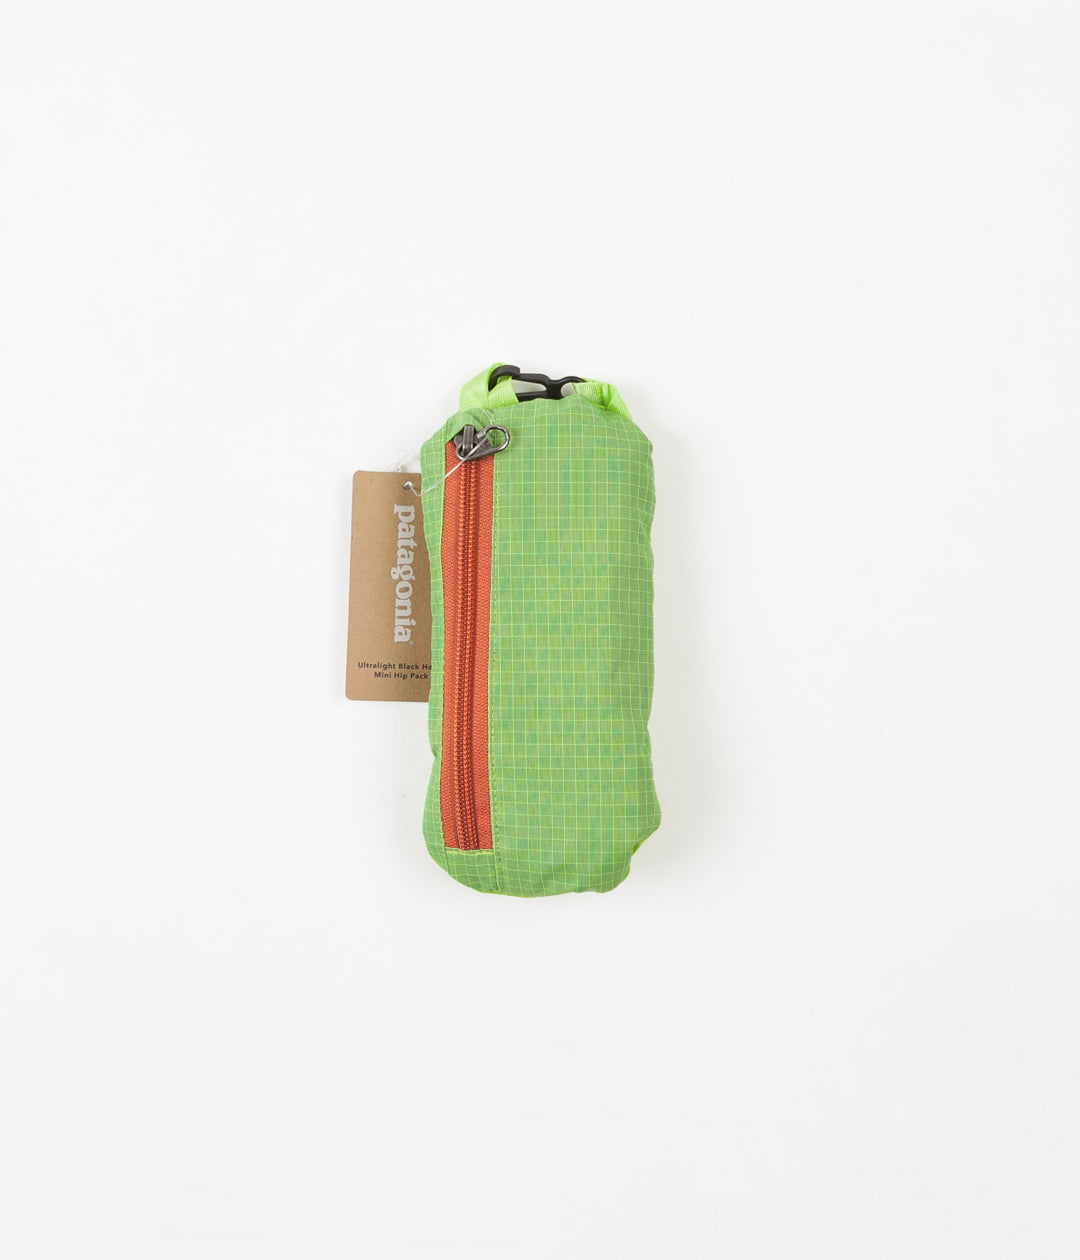 Patagonia Ultralight Black Hole Mini Hip Pack - Patchwork: Peppergrass Green